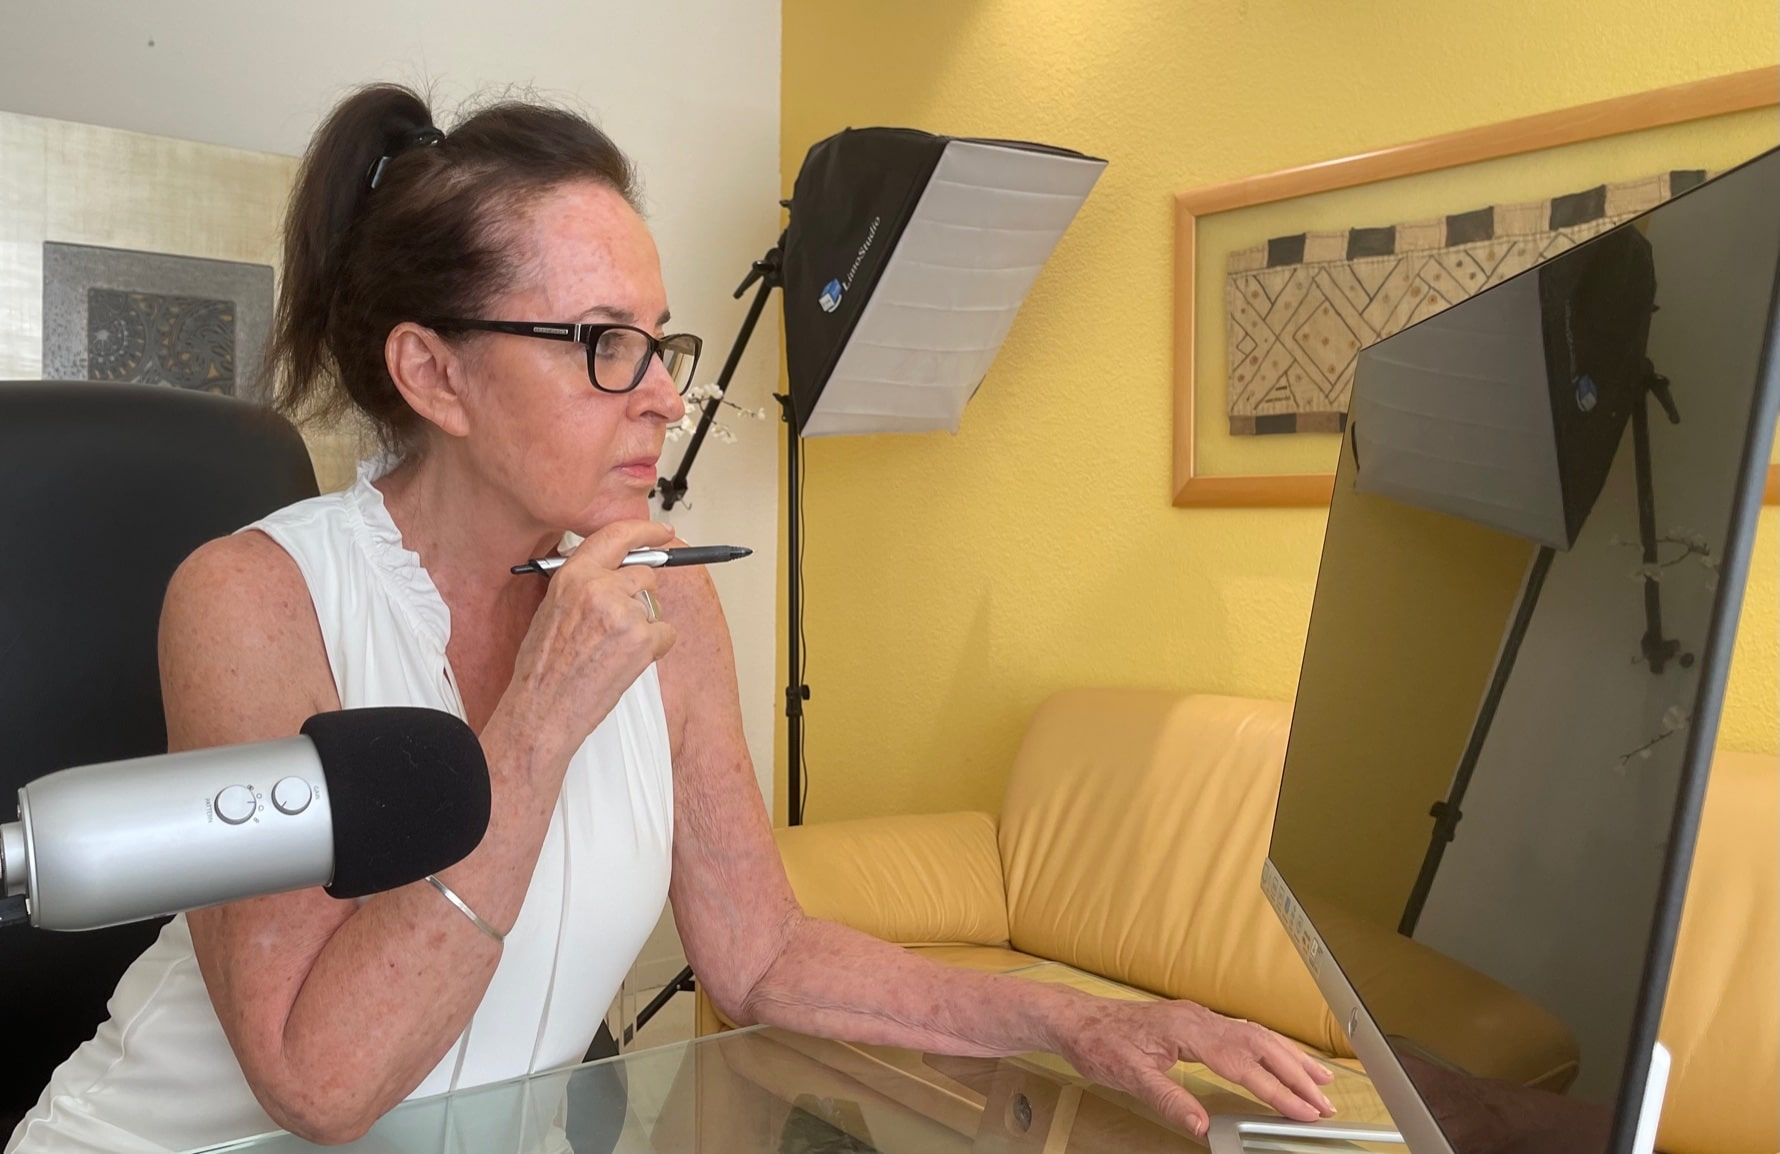 Dr. Sandy Gluckman working at home